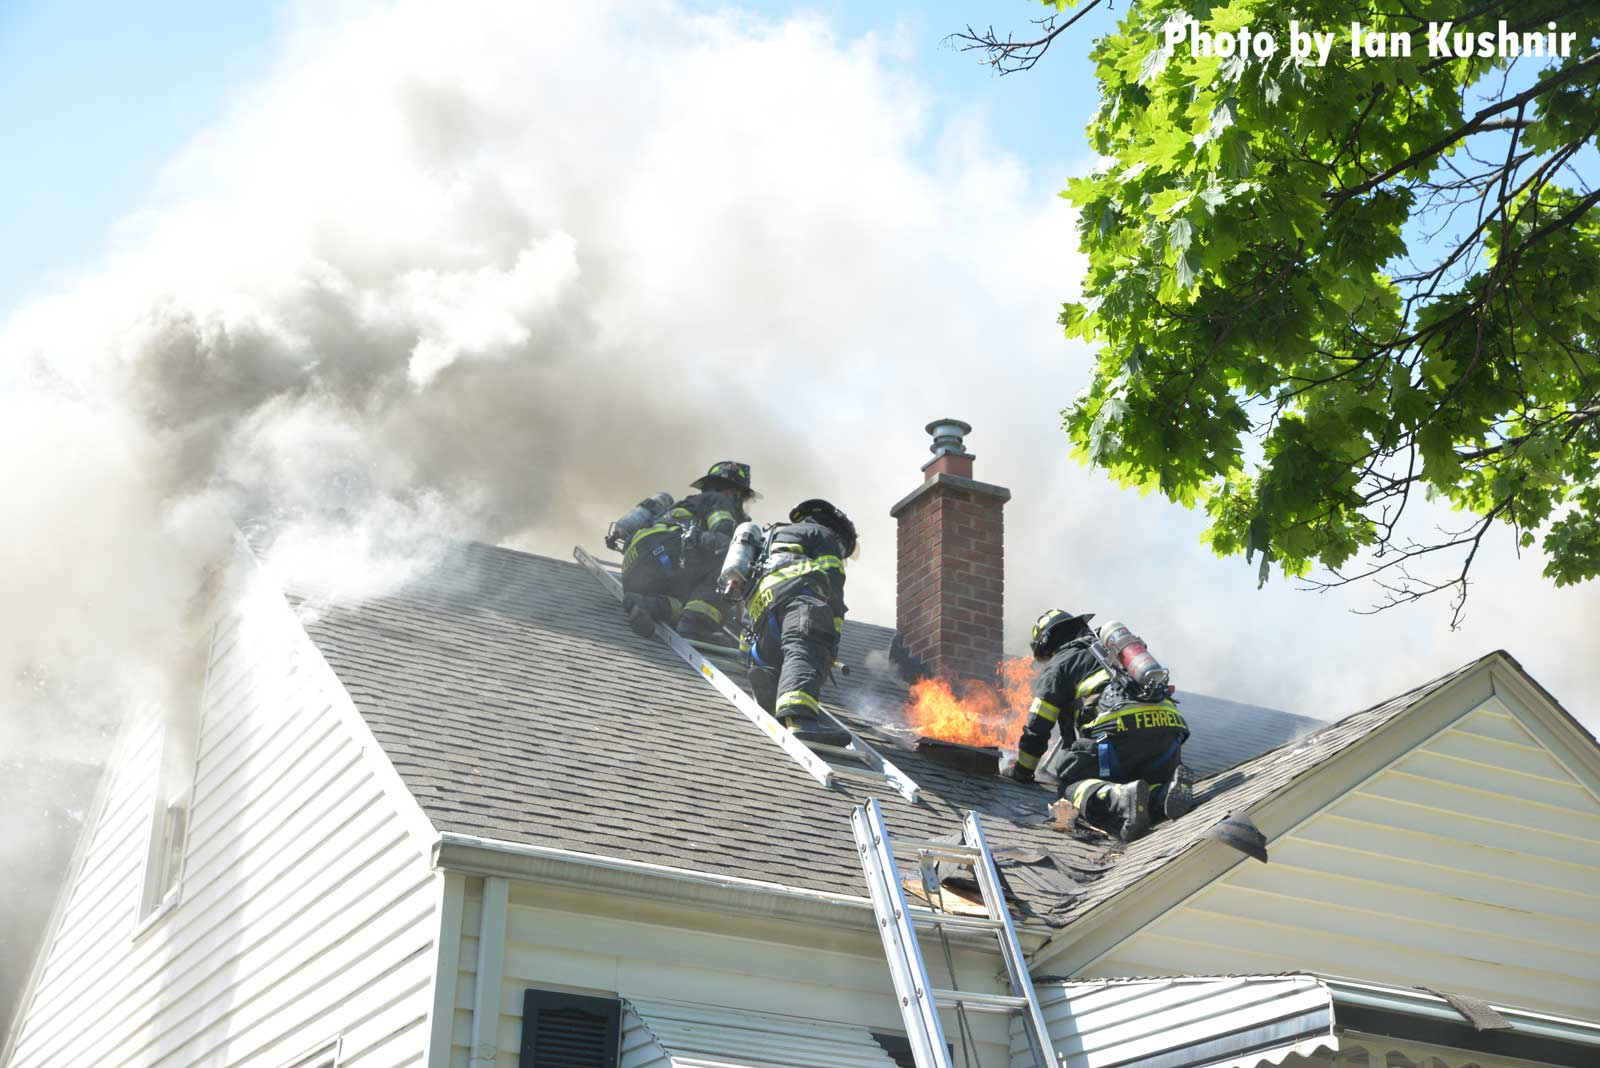 Firefighters perform vertical ventilation on the roof of a house fire